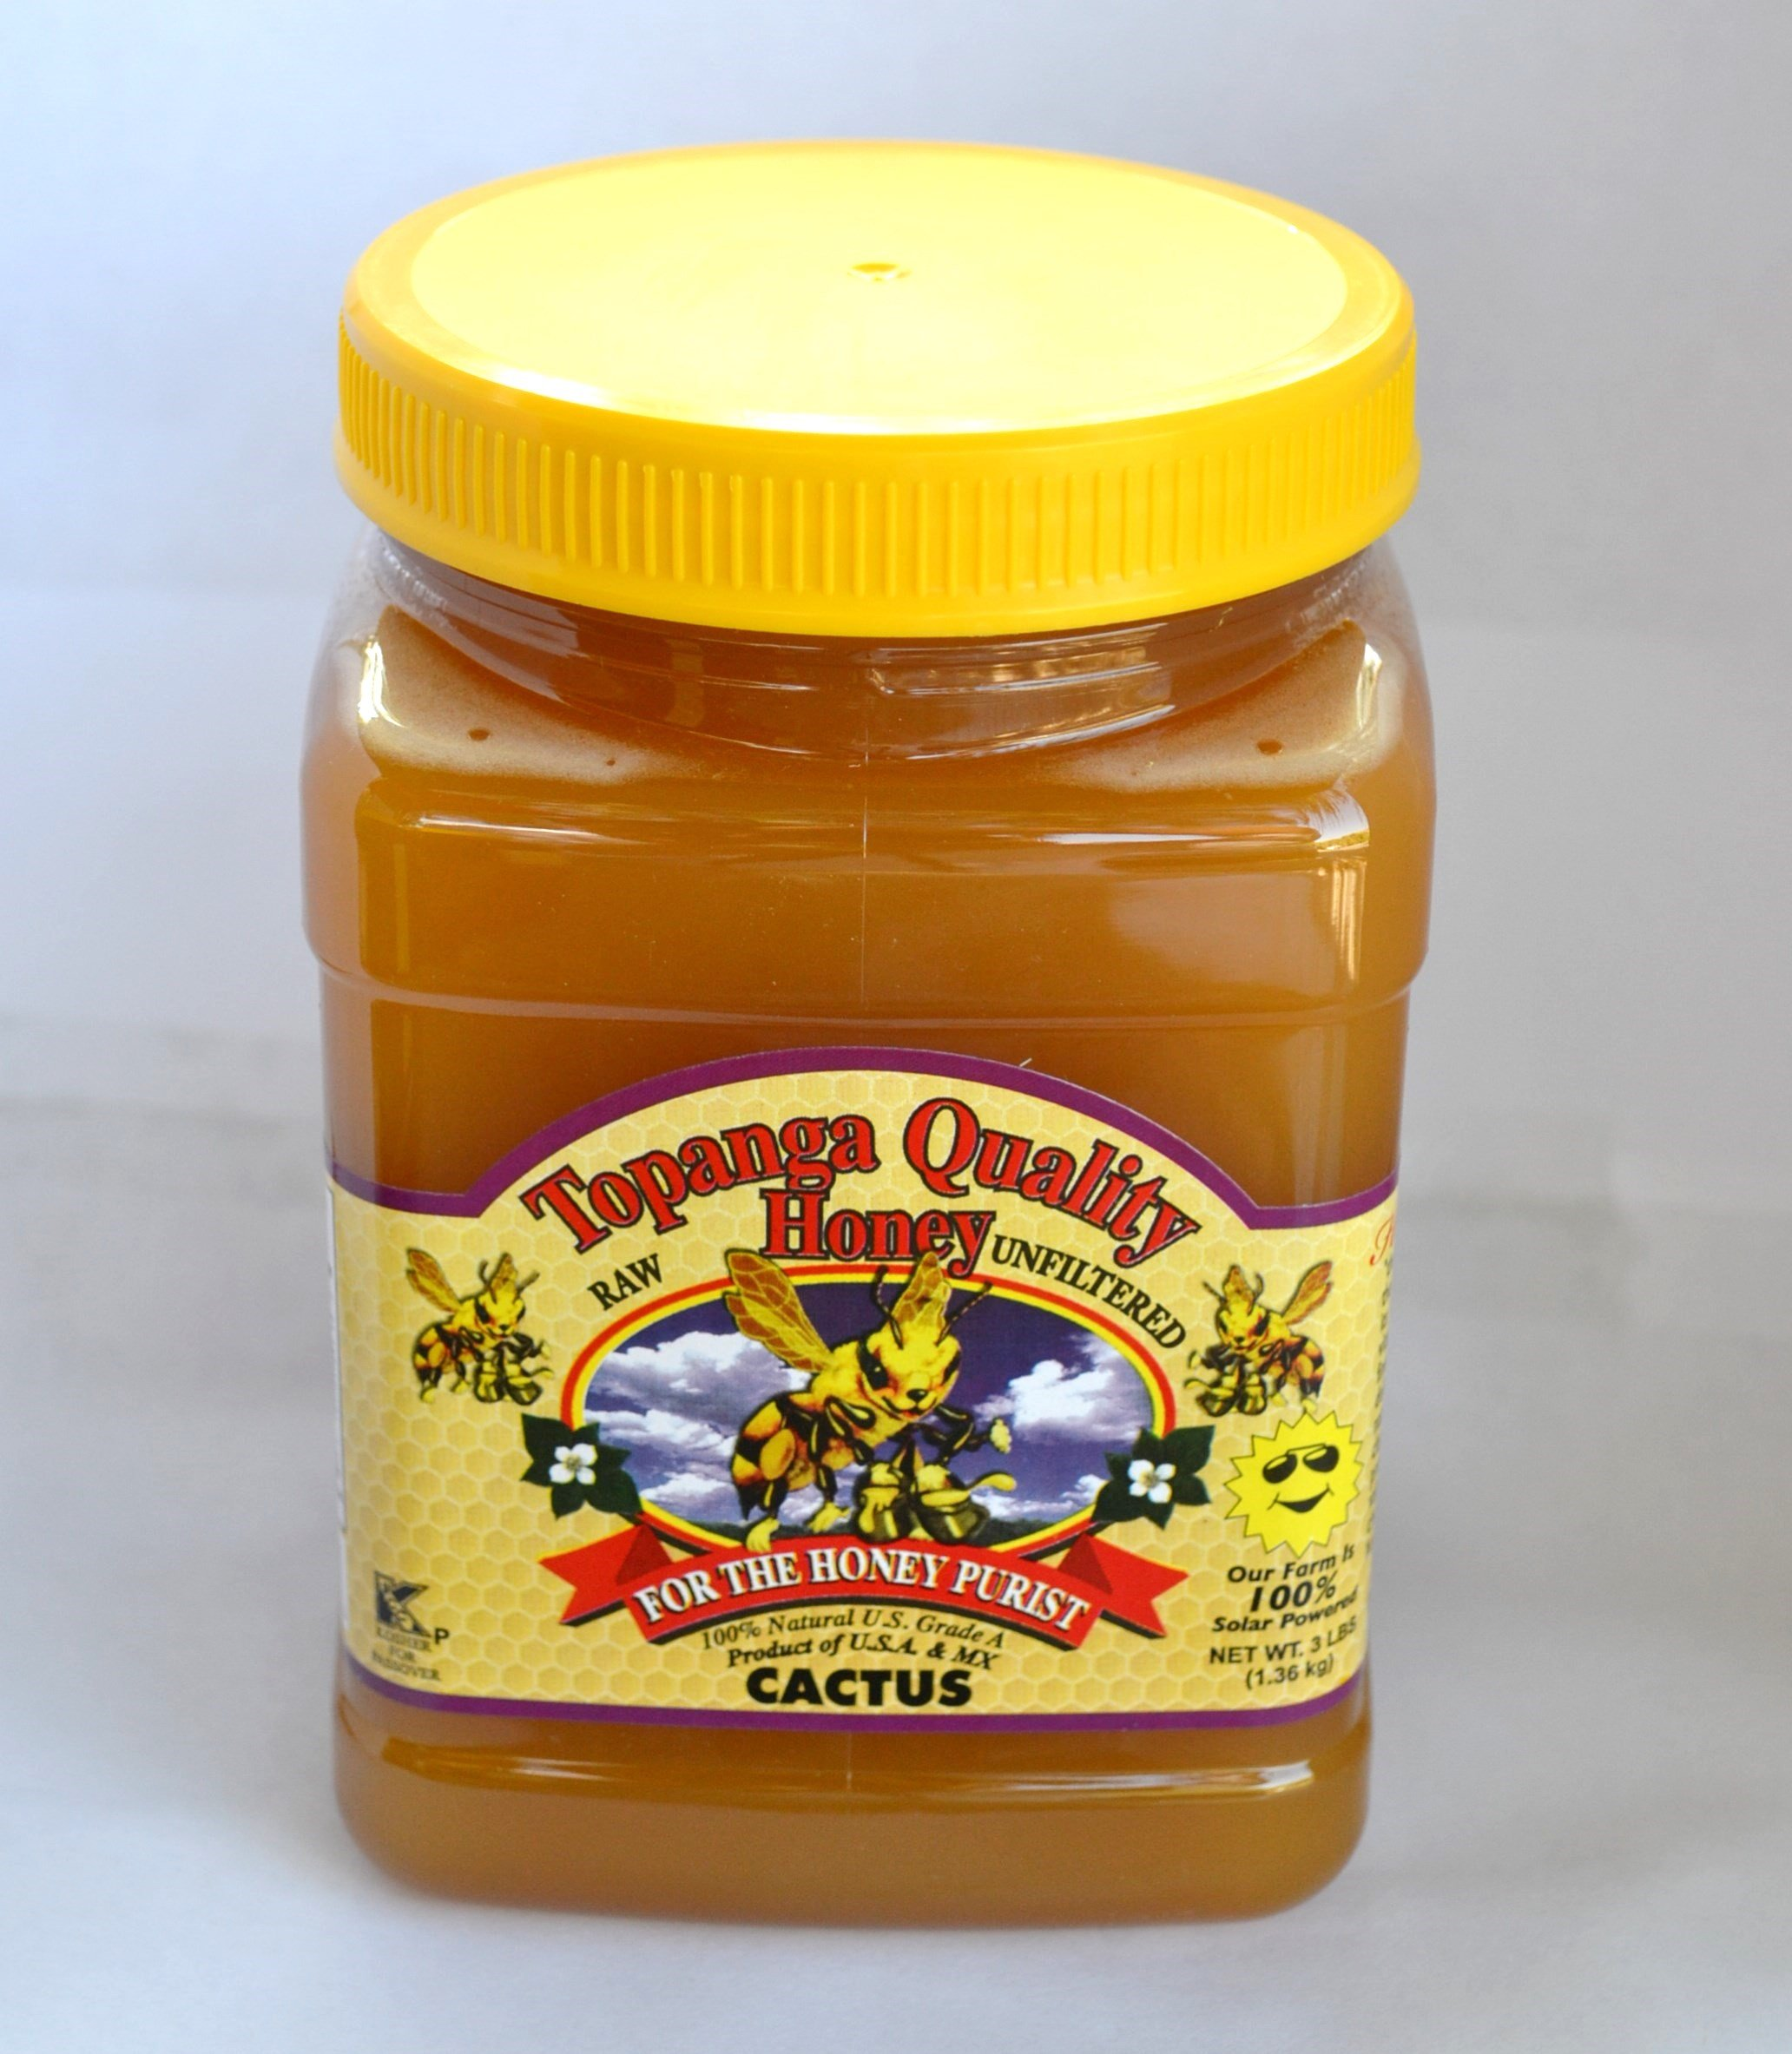 Topanga Quality Honey (Cactus Floral Source) Raw, Unfiltered, Unpasturized, Best Quality, All Natural, Kosher - 3 Pounds Each by Topanga Quality Honey (Image #1)